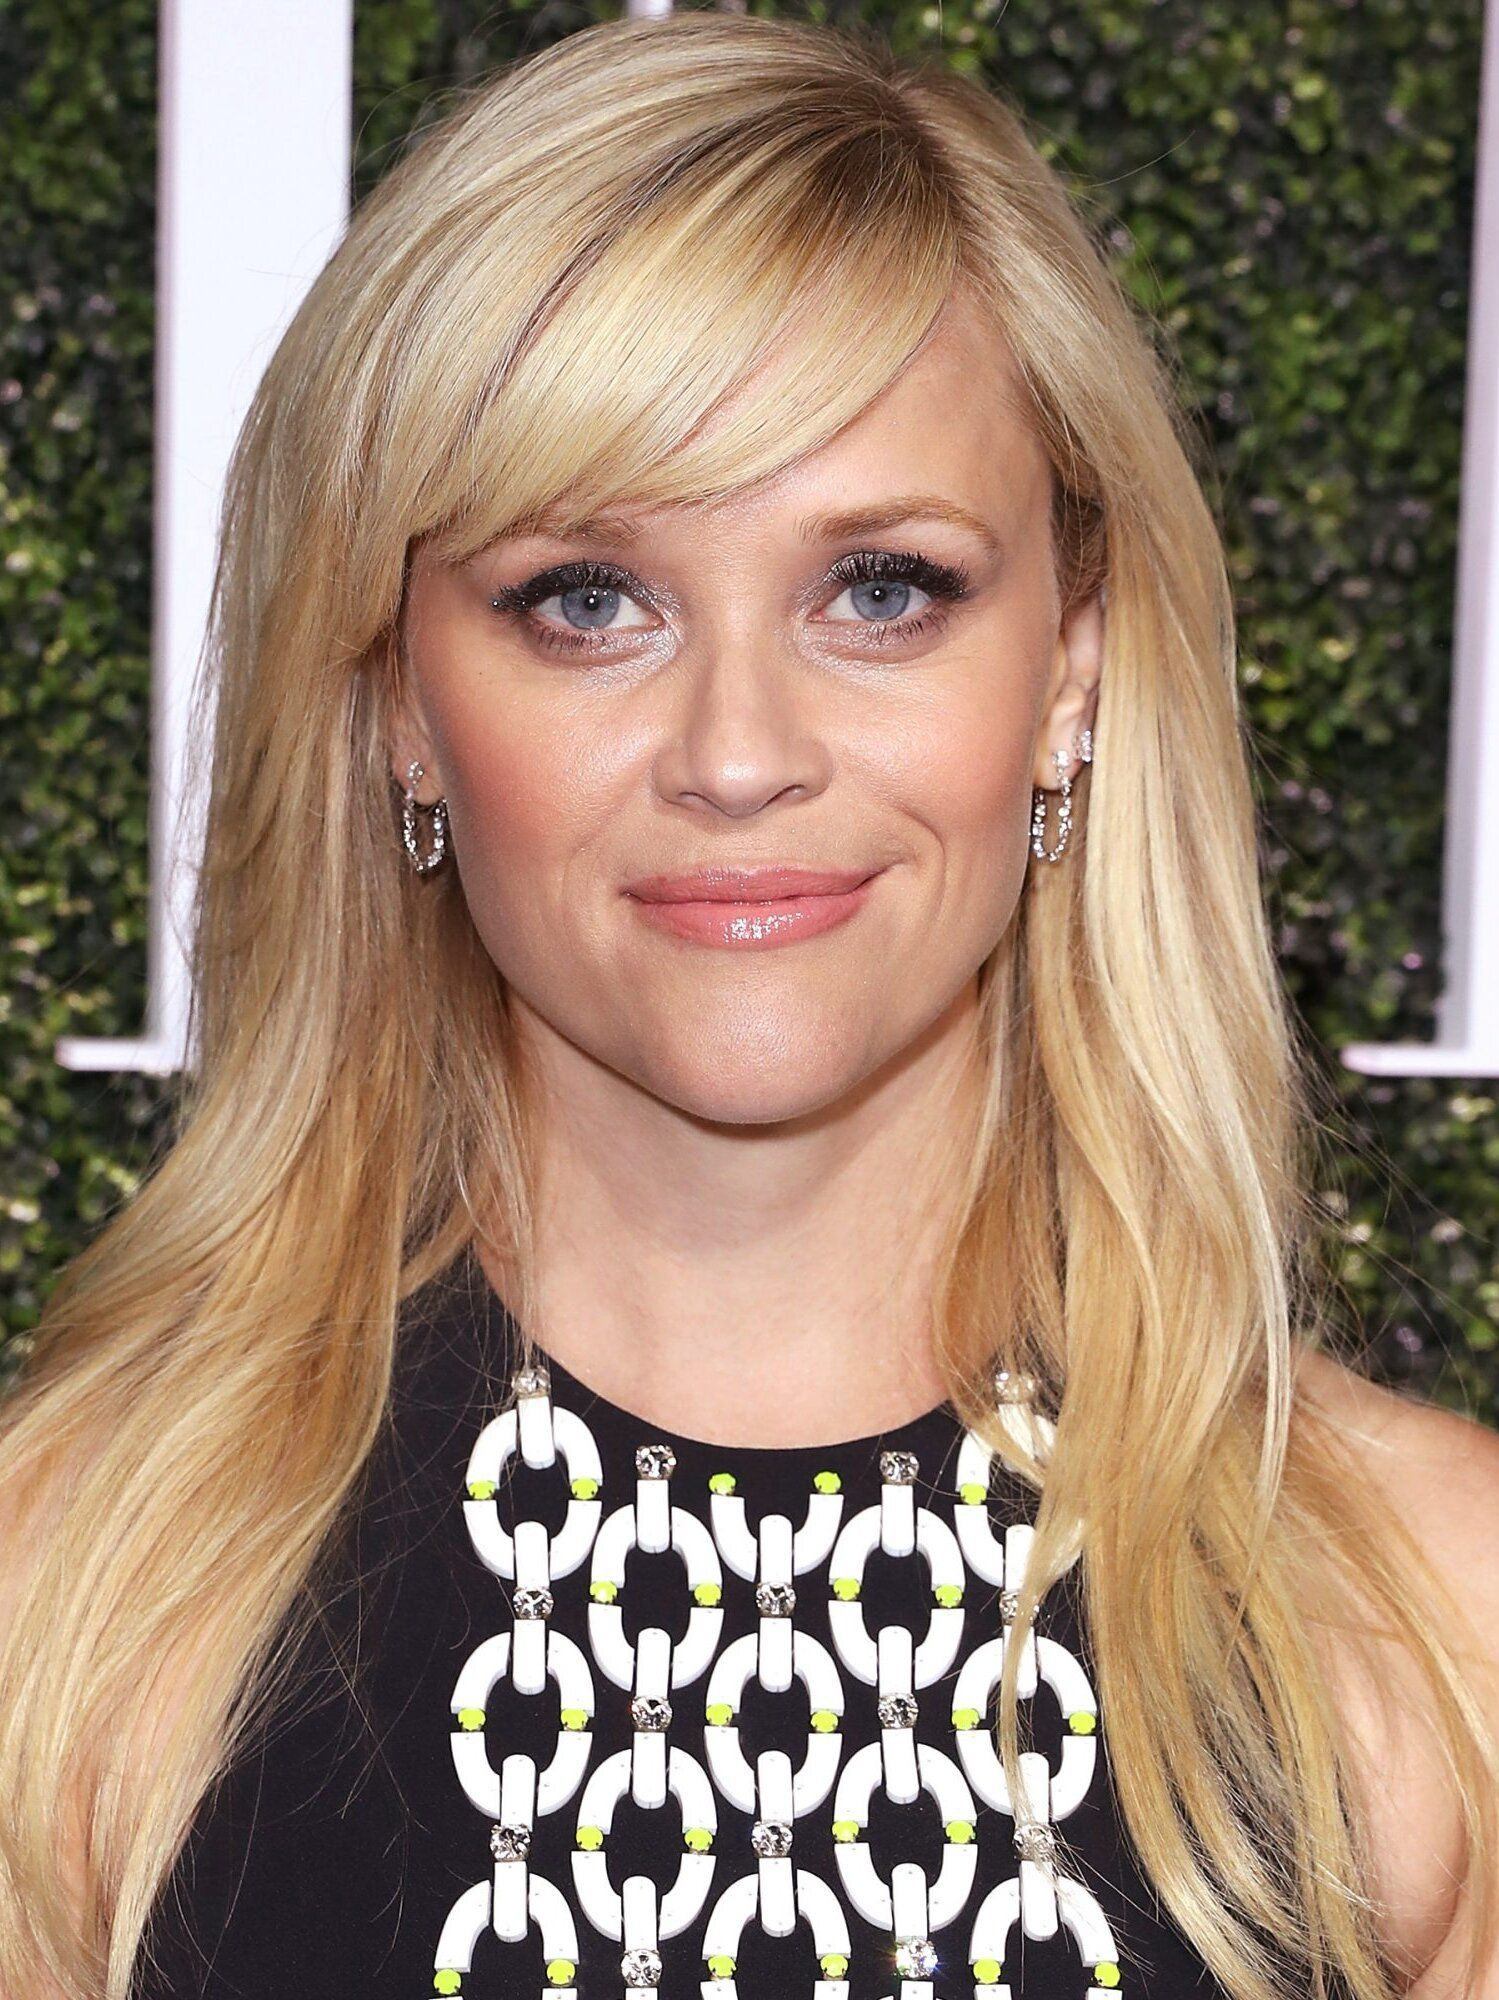 43+ Medium length hairstyles with bangs for heart shaped faces inspirations